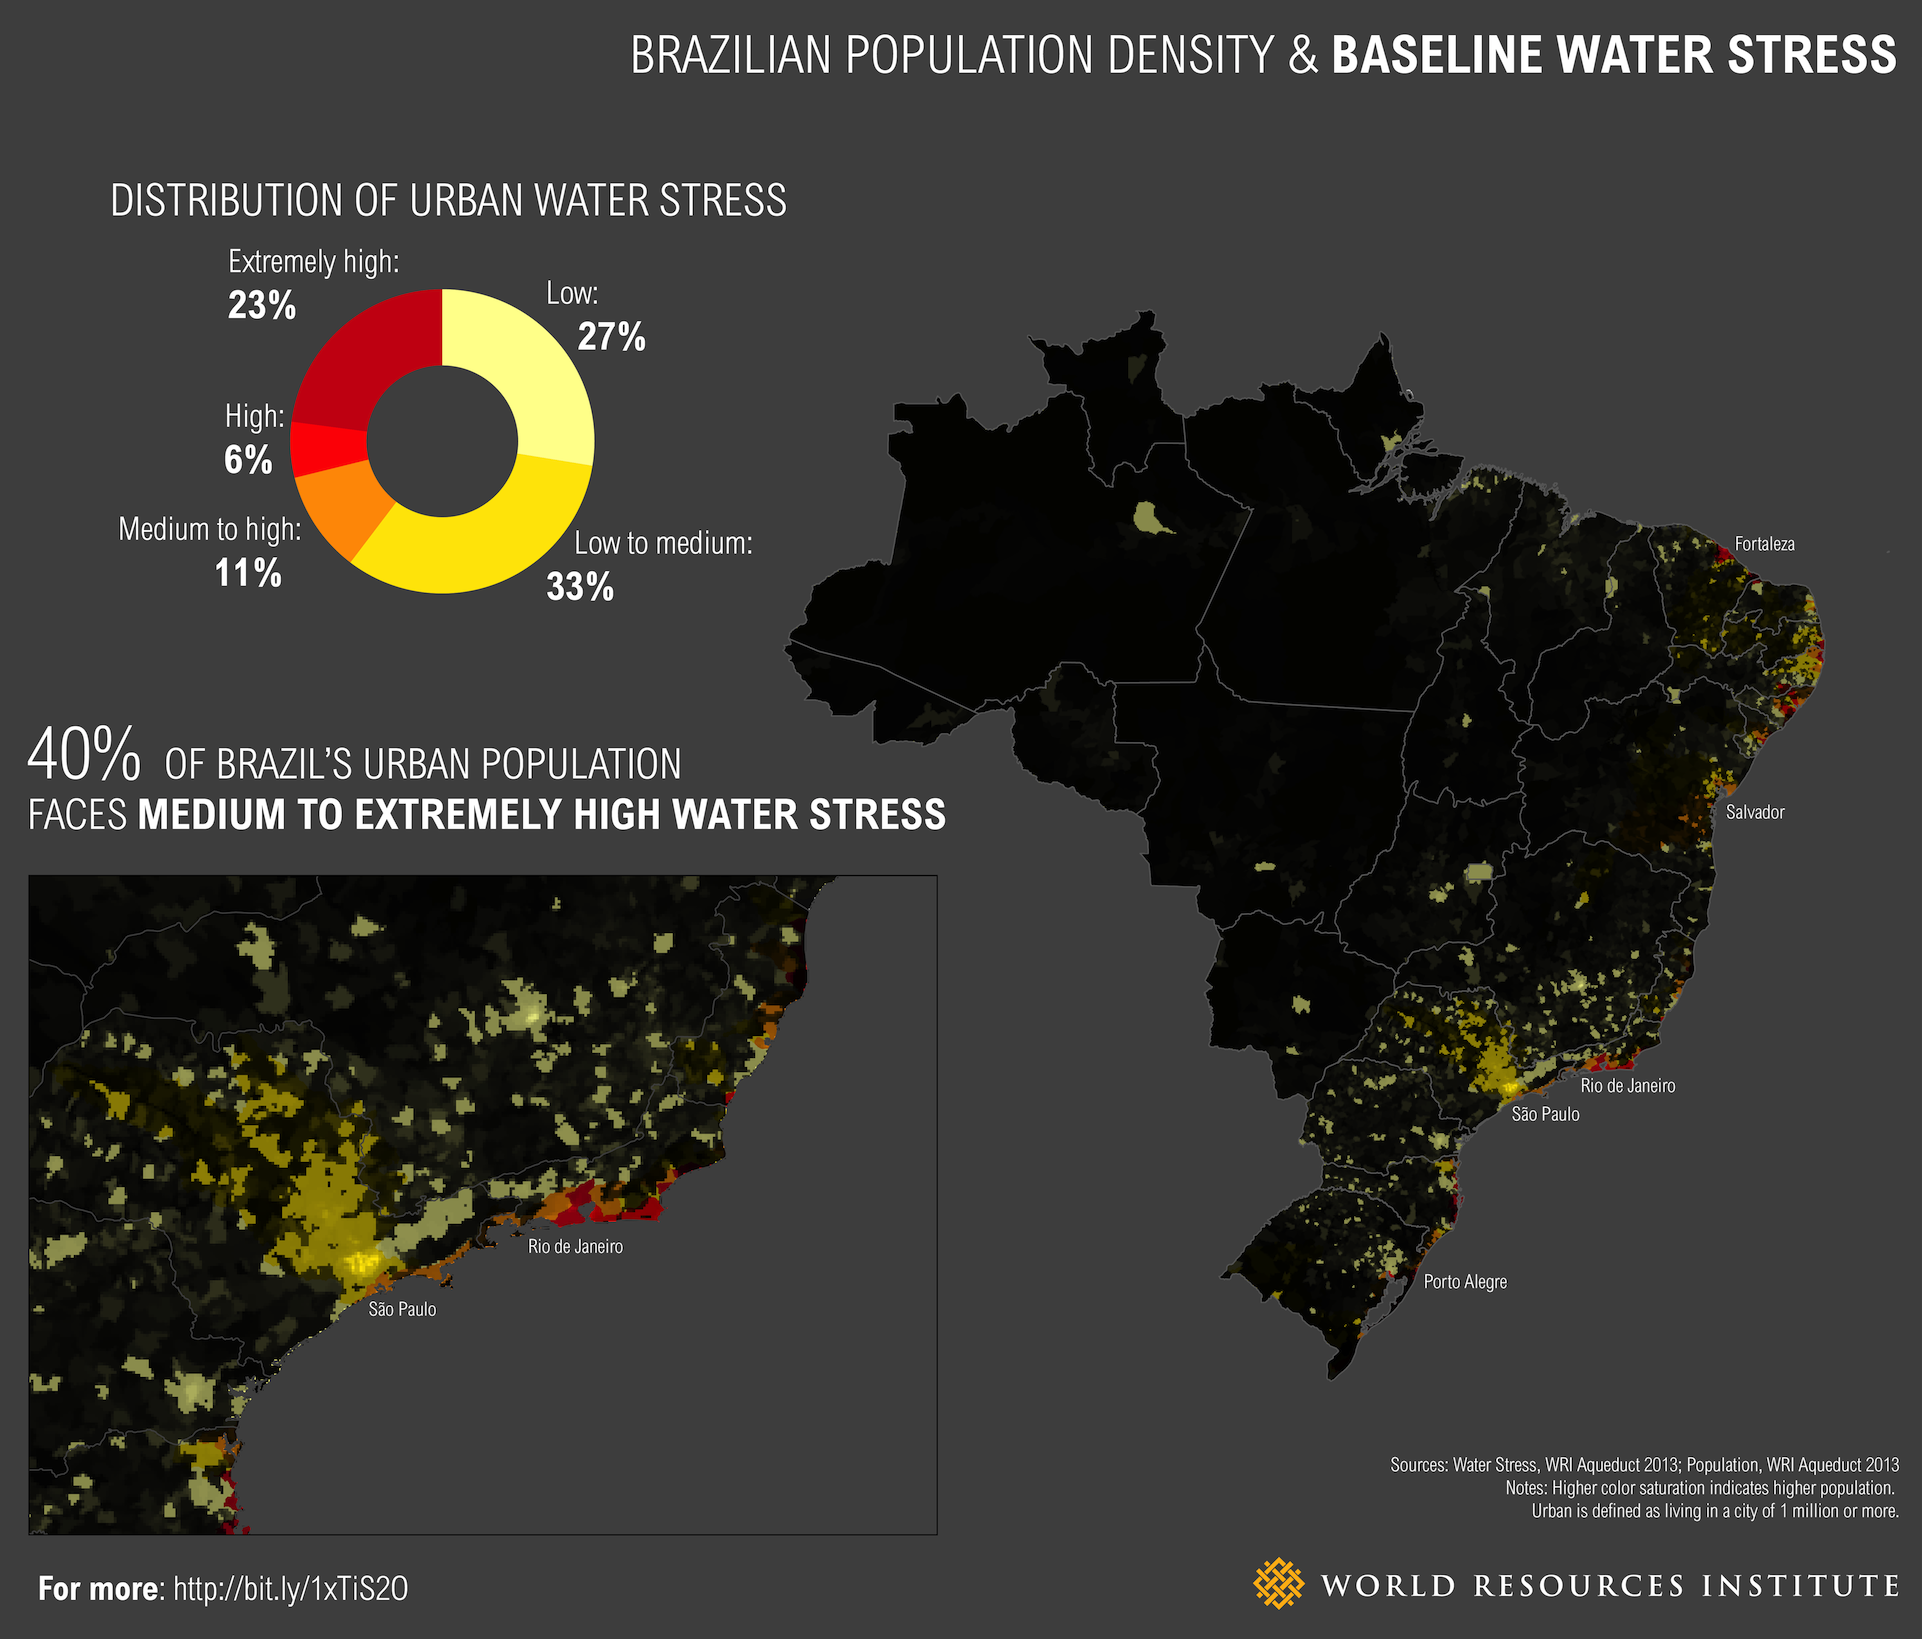 <p>Figure 3: Brazil Population Density & Baseline Water Stress</p>